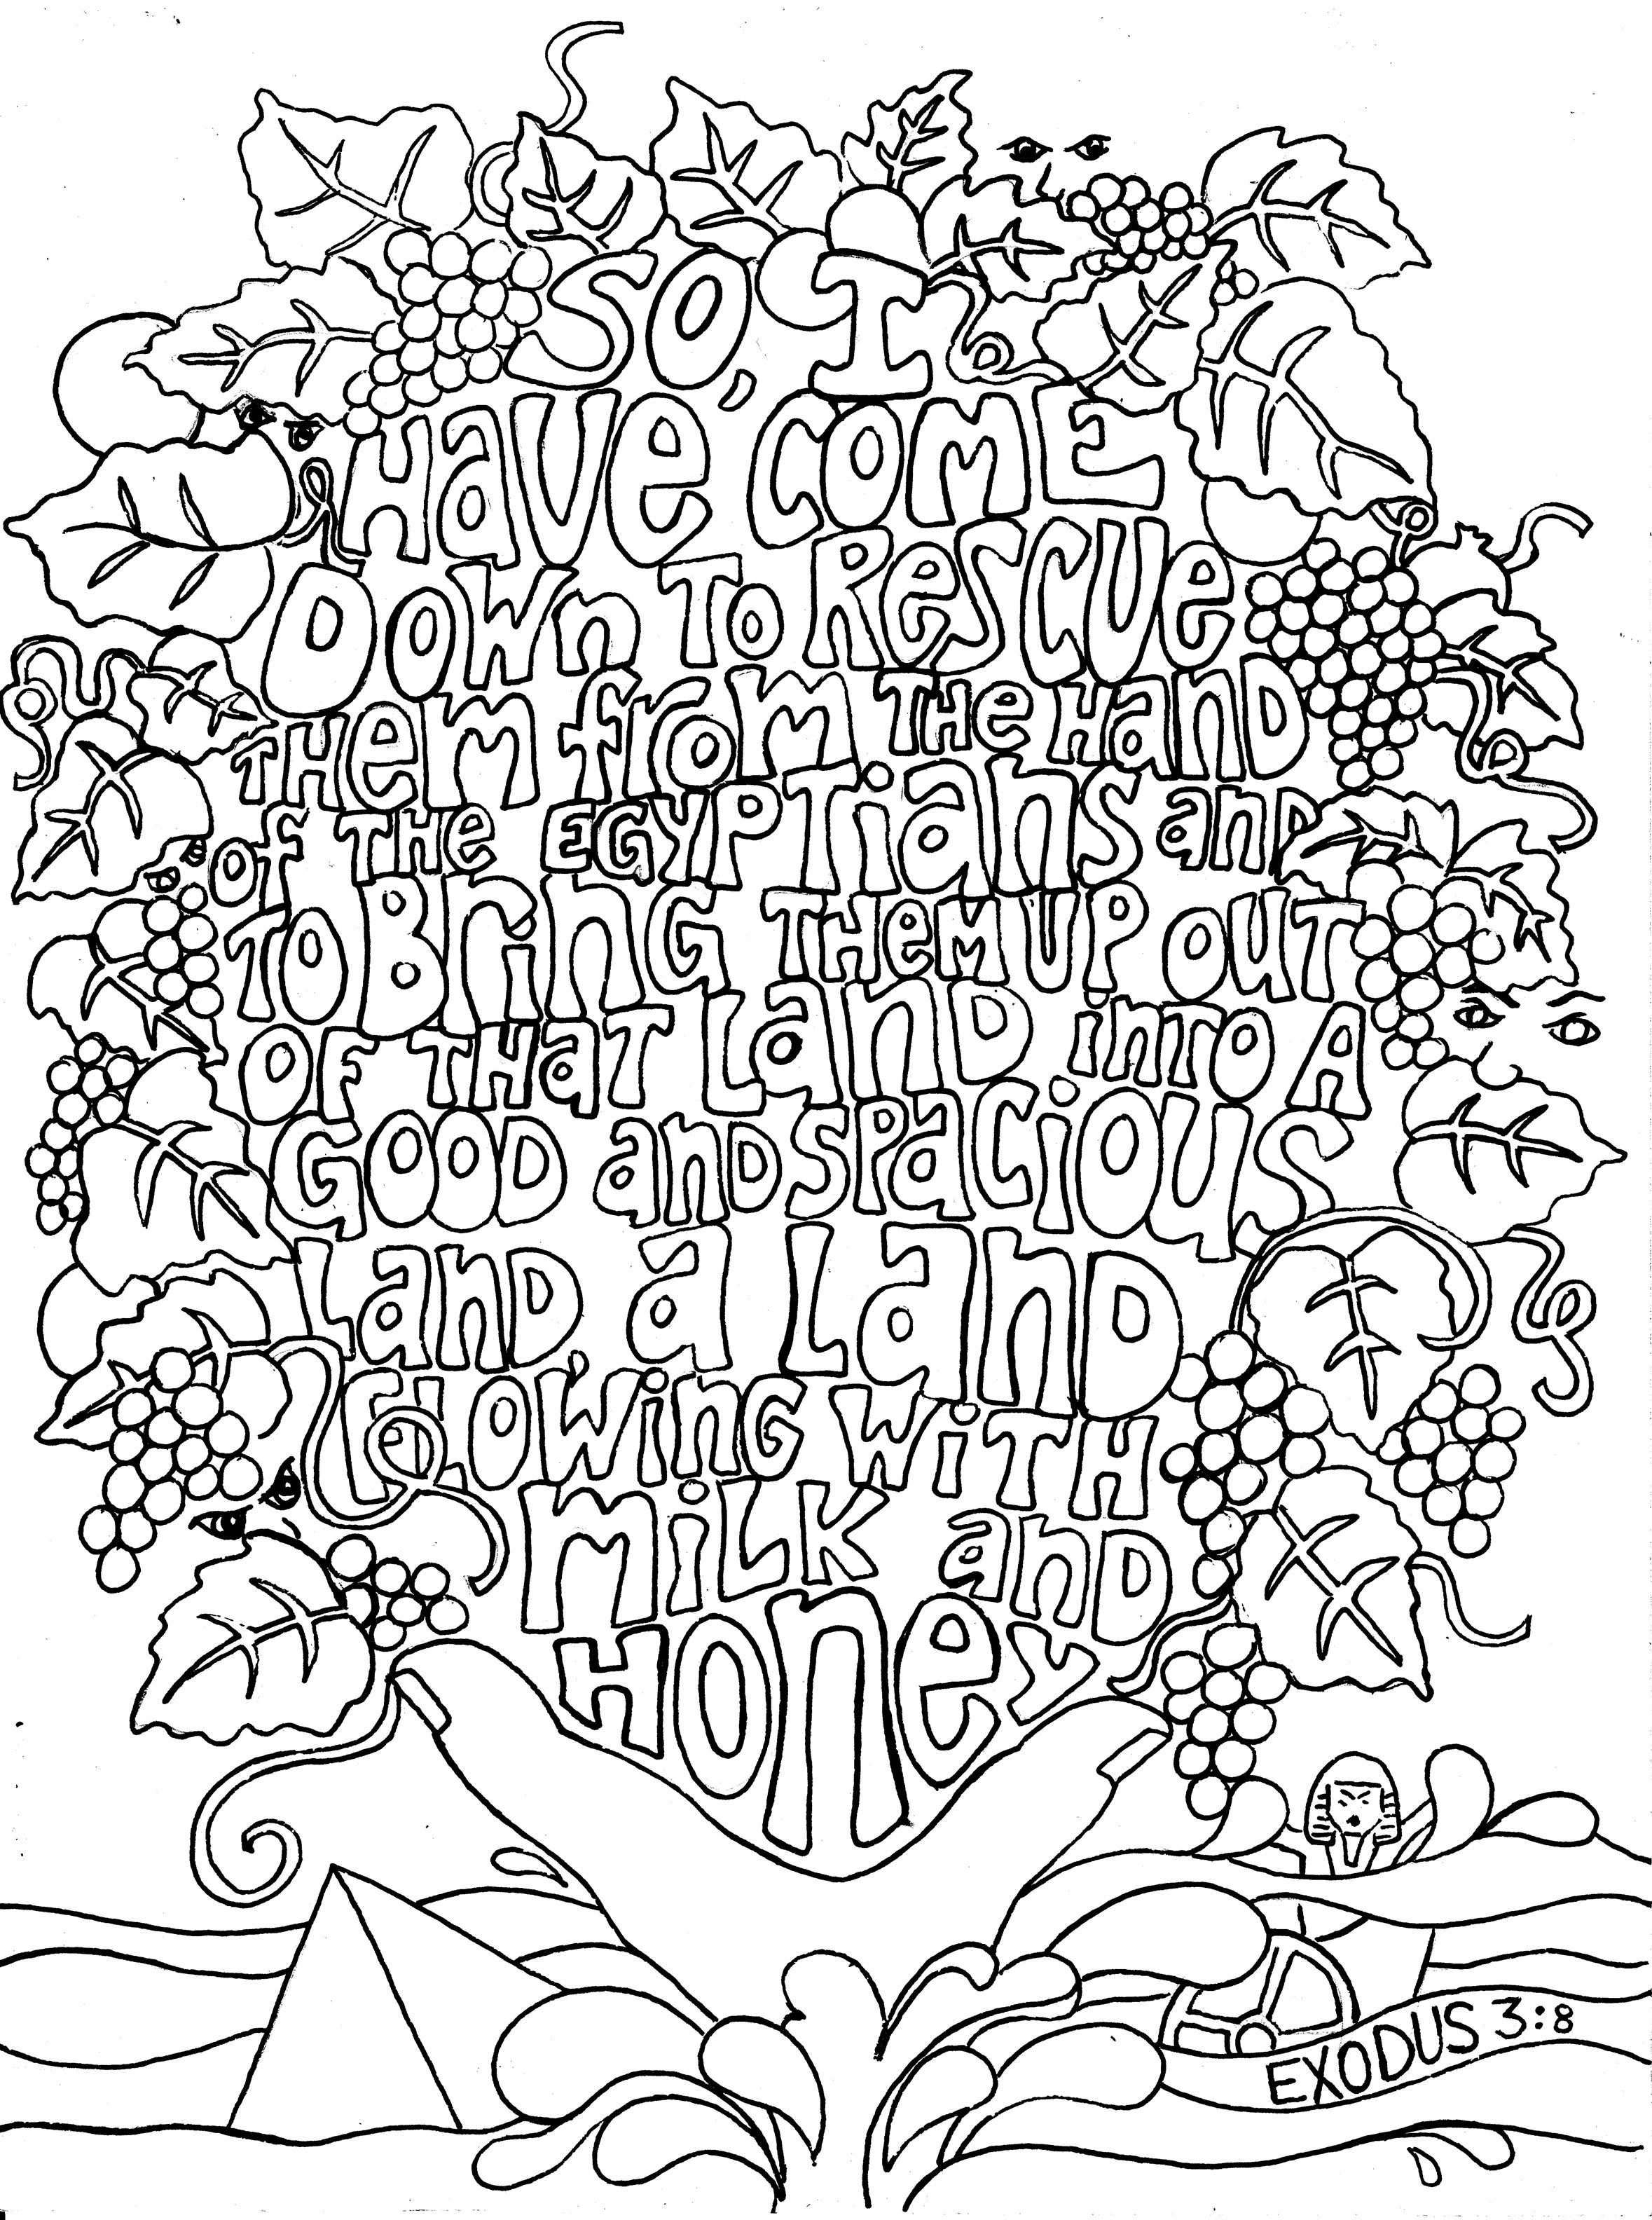 Exodus 38 Adult colouring in sheets